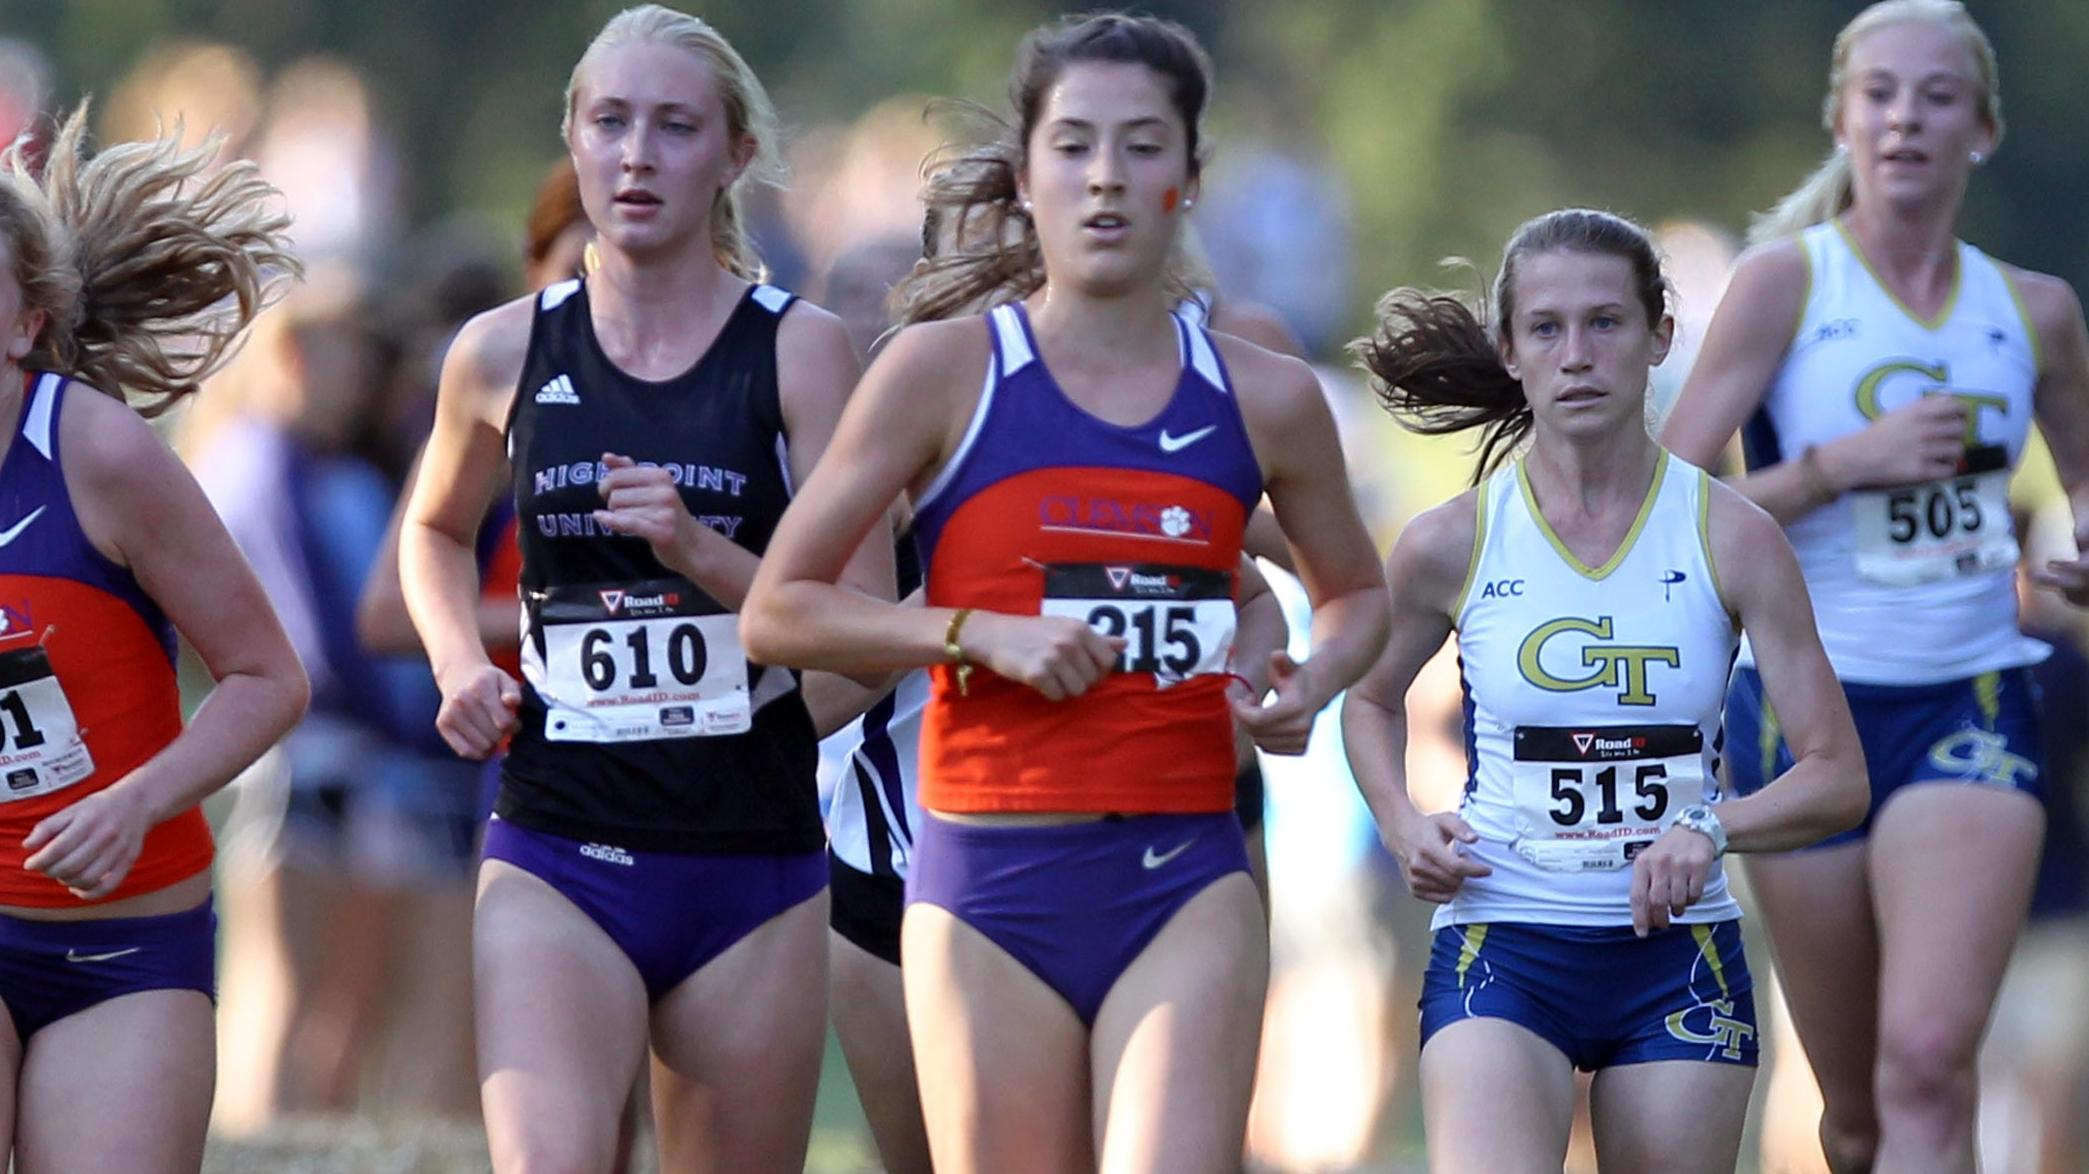 Cross Country Travels to Compete at Pre-Nationals